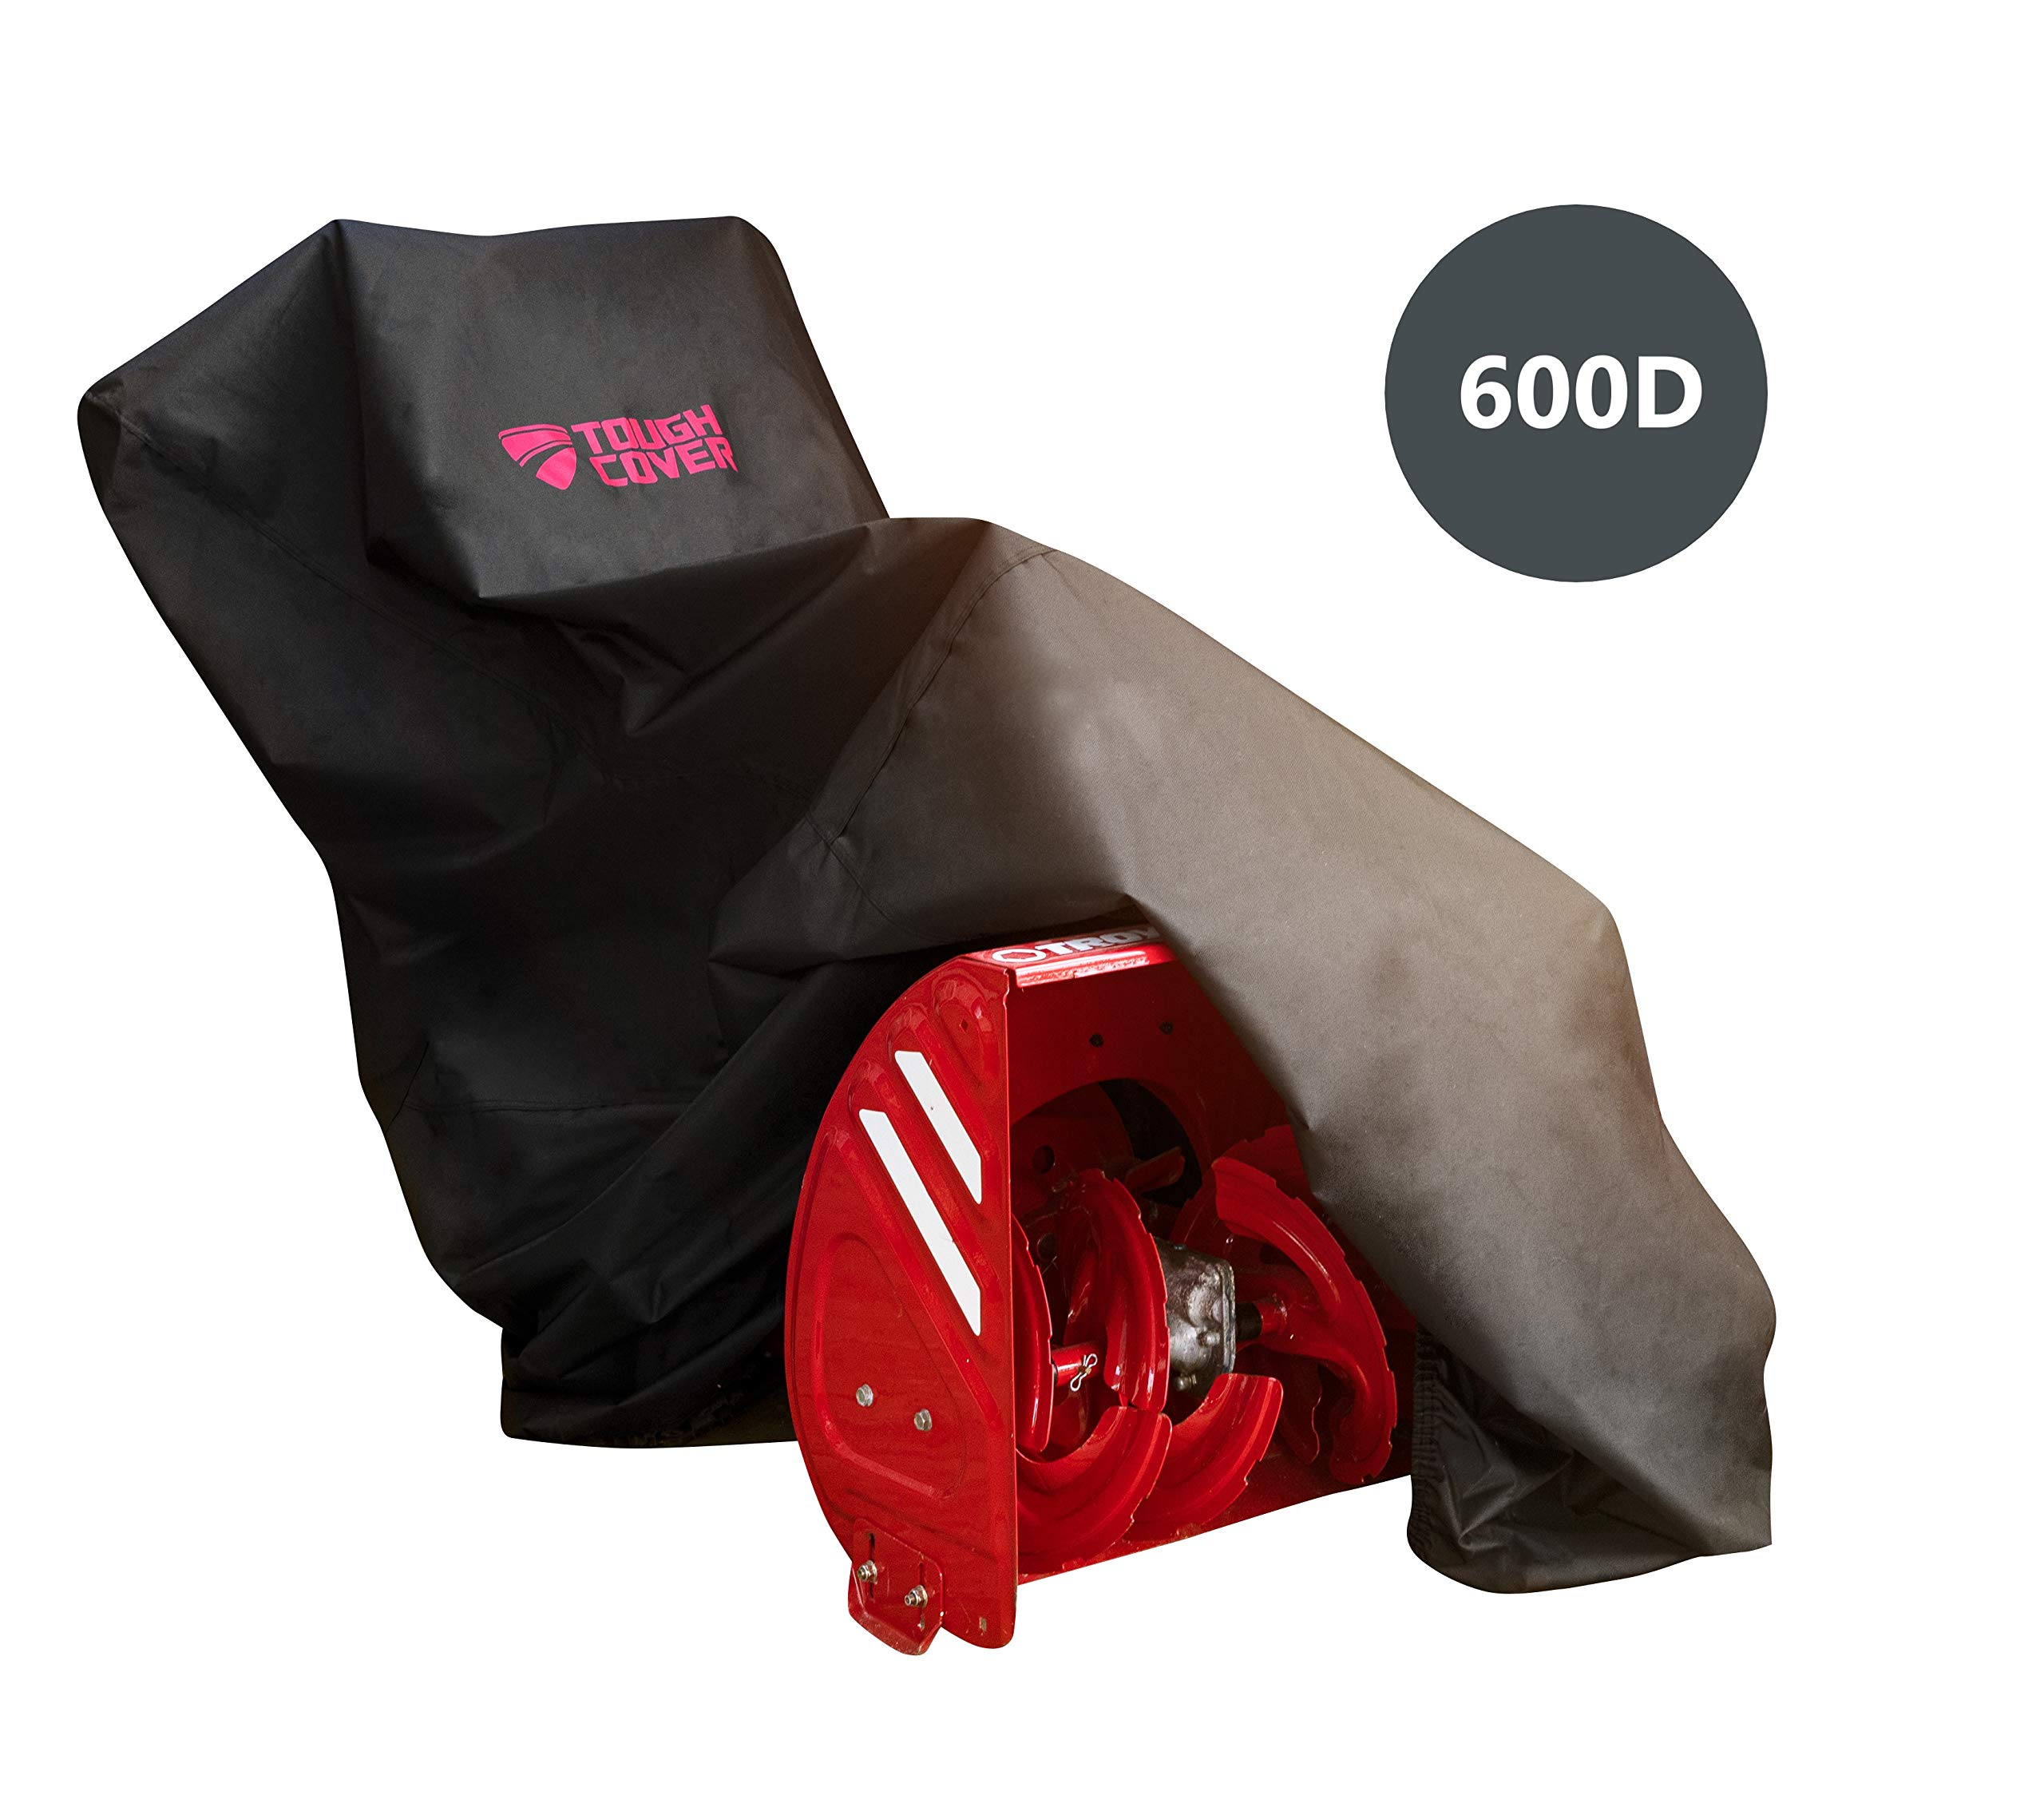 ToughCover Premium Snow Thrower Cover. Heavy Duty 600D Marine Grade Fabric. Universal Fit. Weather, UV & Mold Protection. by Tough Cover